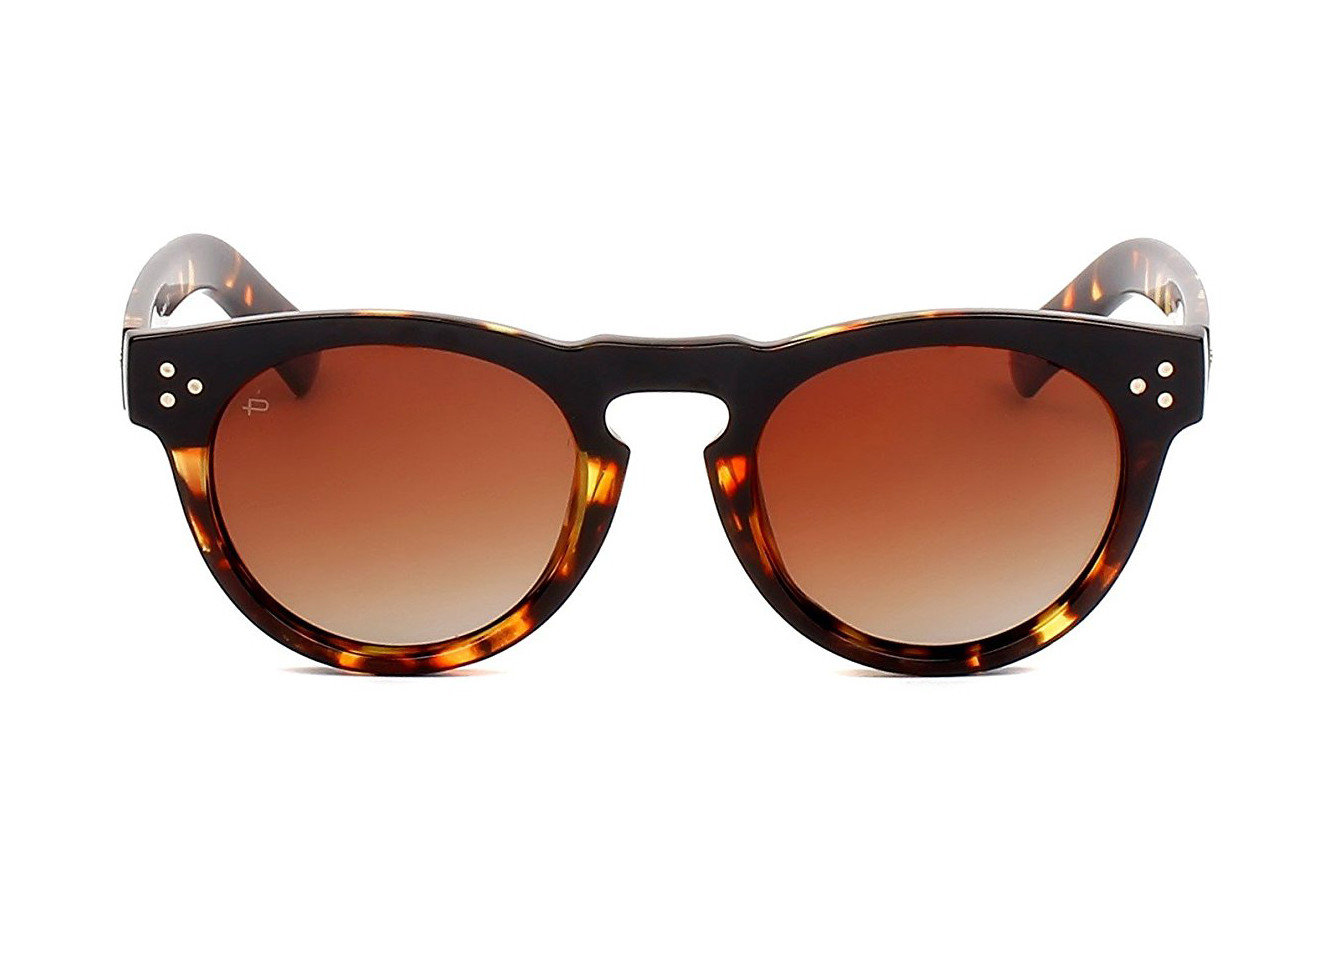 Spring Travel Style + Design Summer Travel Travel Shop spectacles eyewear sunglasses goggles vision care glasses orange accessory product product design font